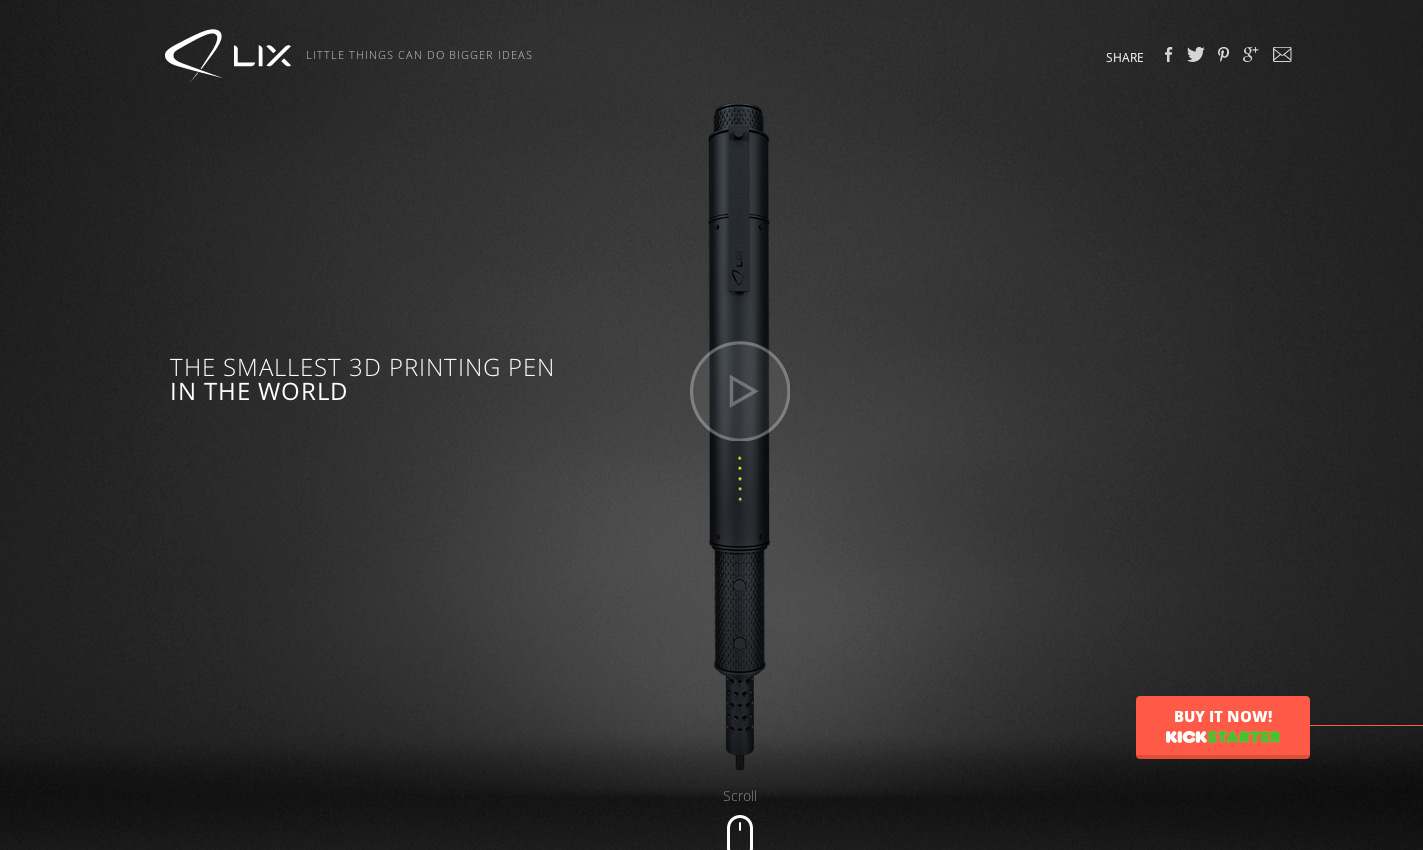 Lix the smallest 3d printing pen in the world site of the day may